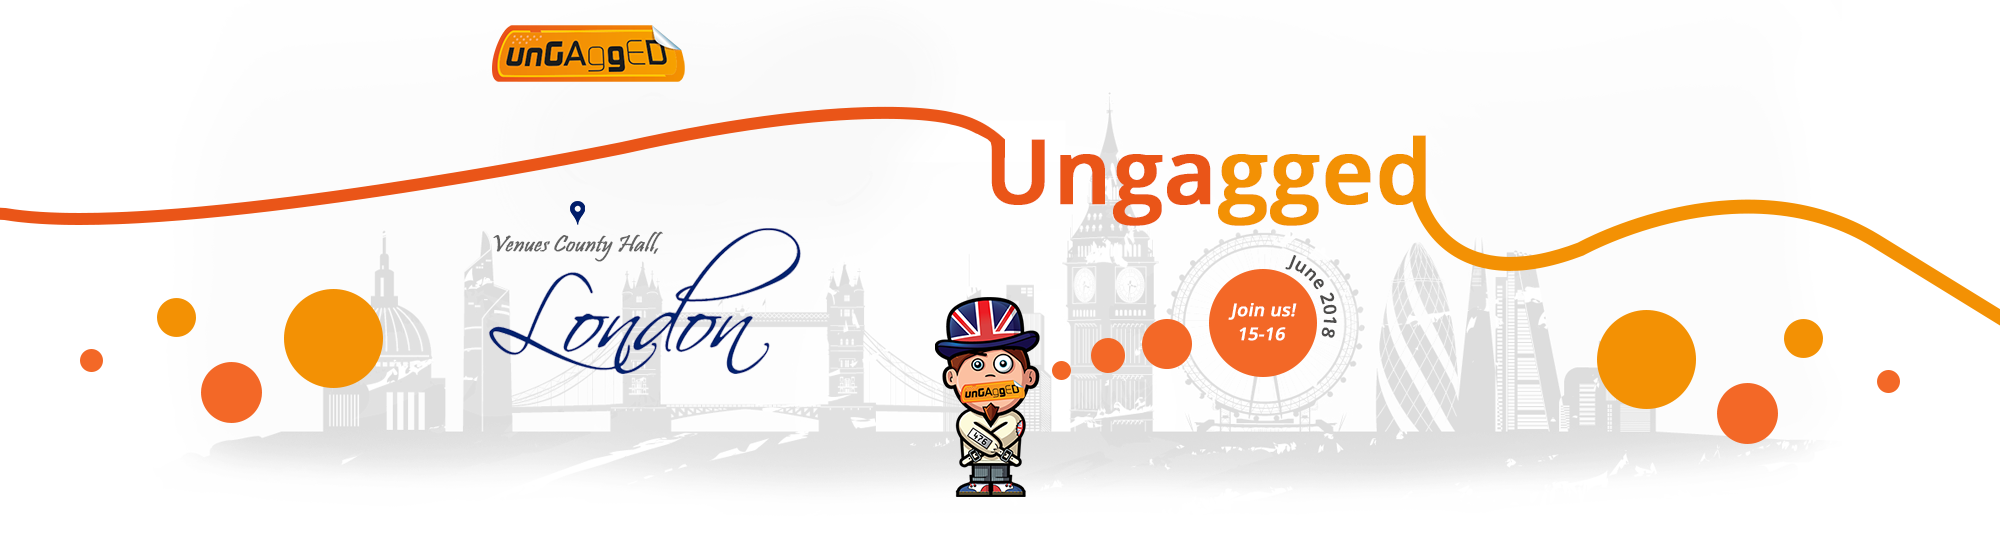 Ungagged London 2018